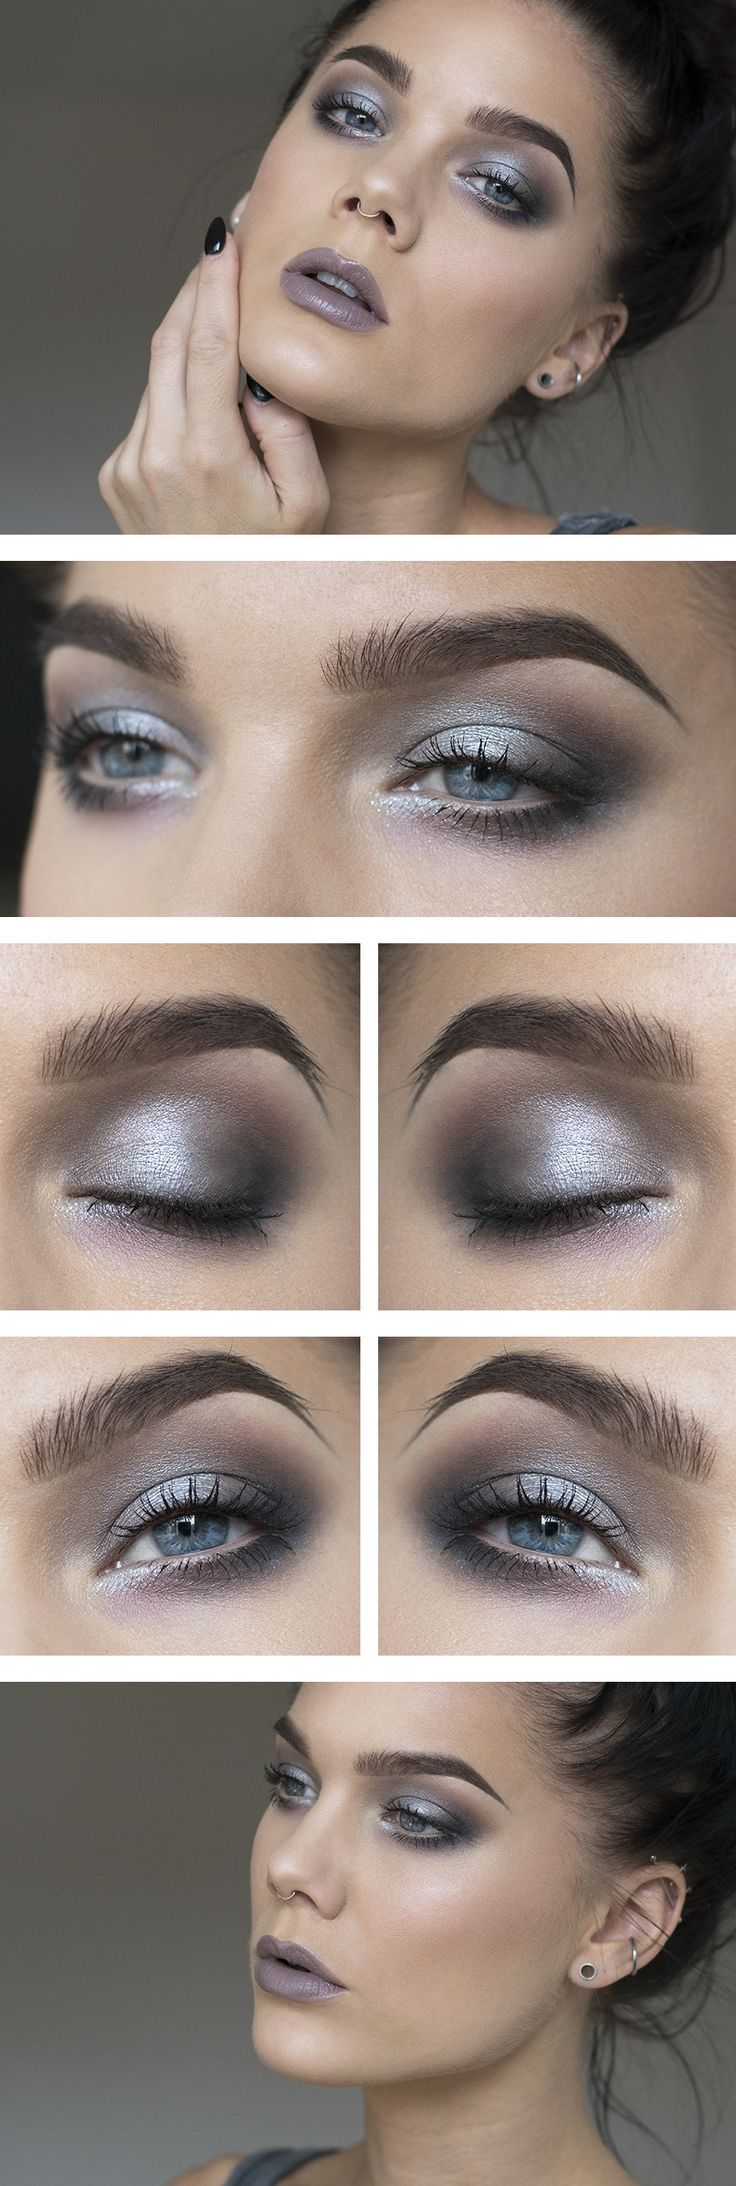 Today's look – Pastel grey. Grey makeup generally looks nice on people with dark features- dark hair, eyes or skin tone.